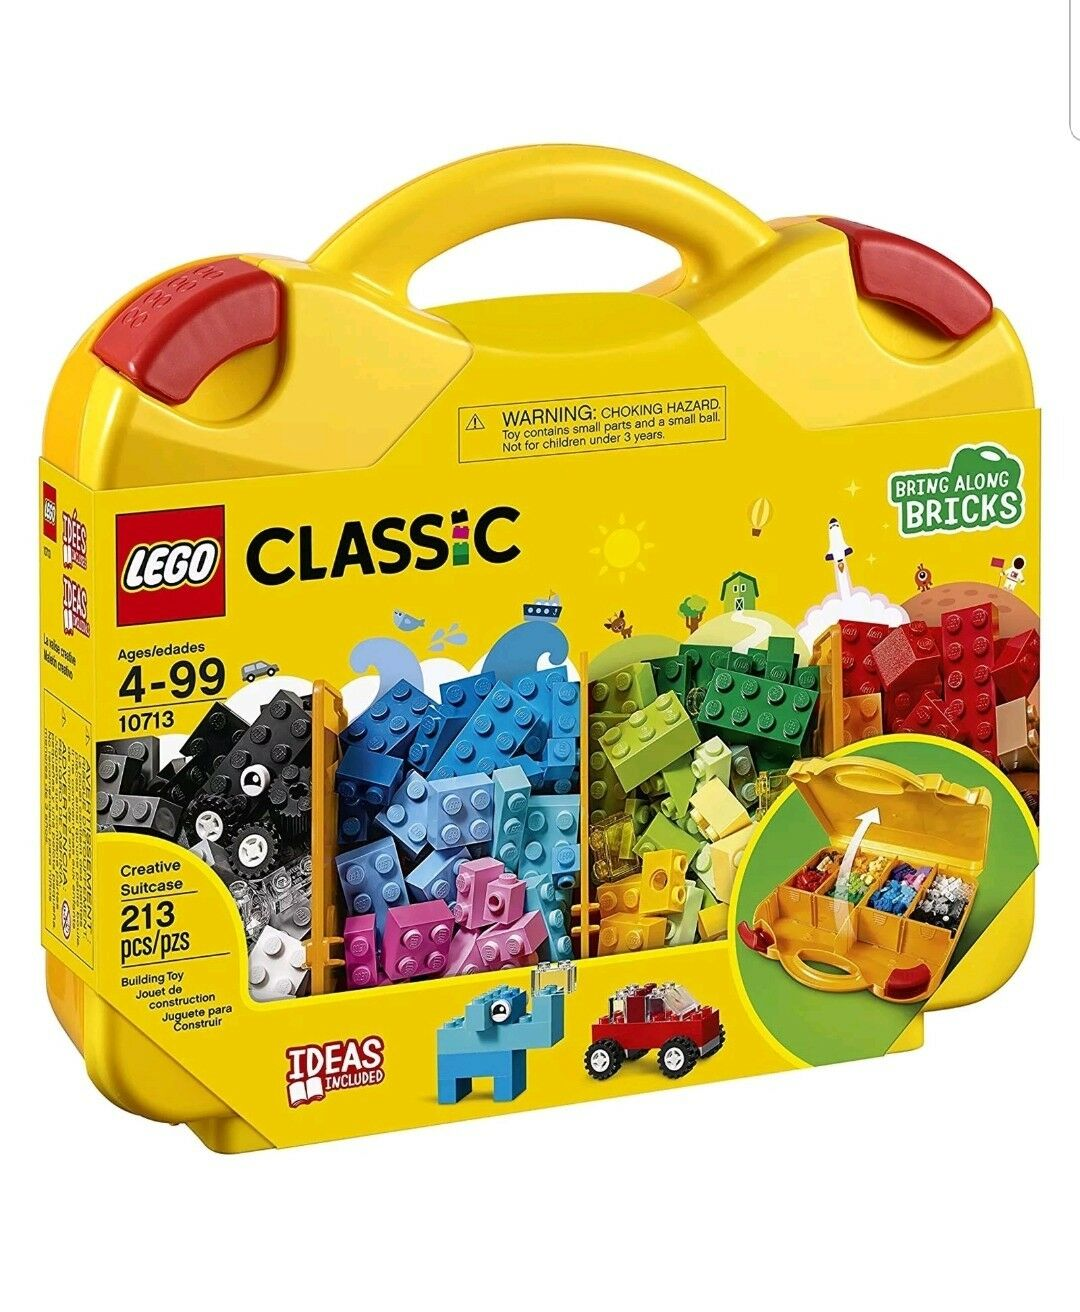 LEGO LEGO LEGO 10713 CLASSIC CREATIVE SUITCASE 213pcs Beginner Building Kit Toy Lots 3 46af61